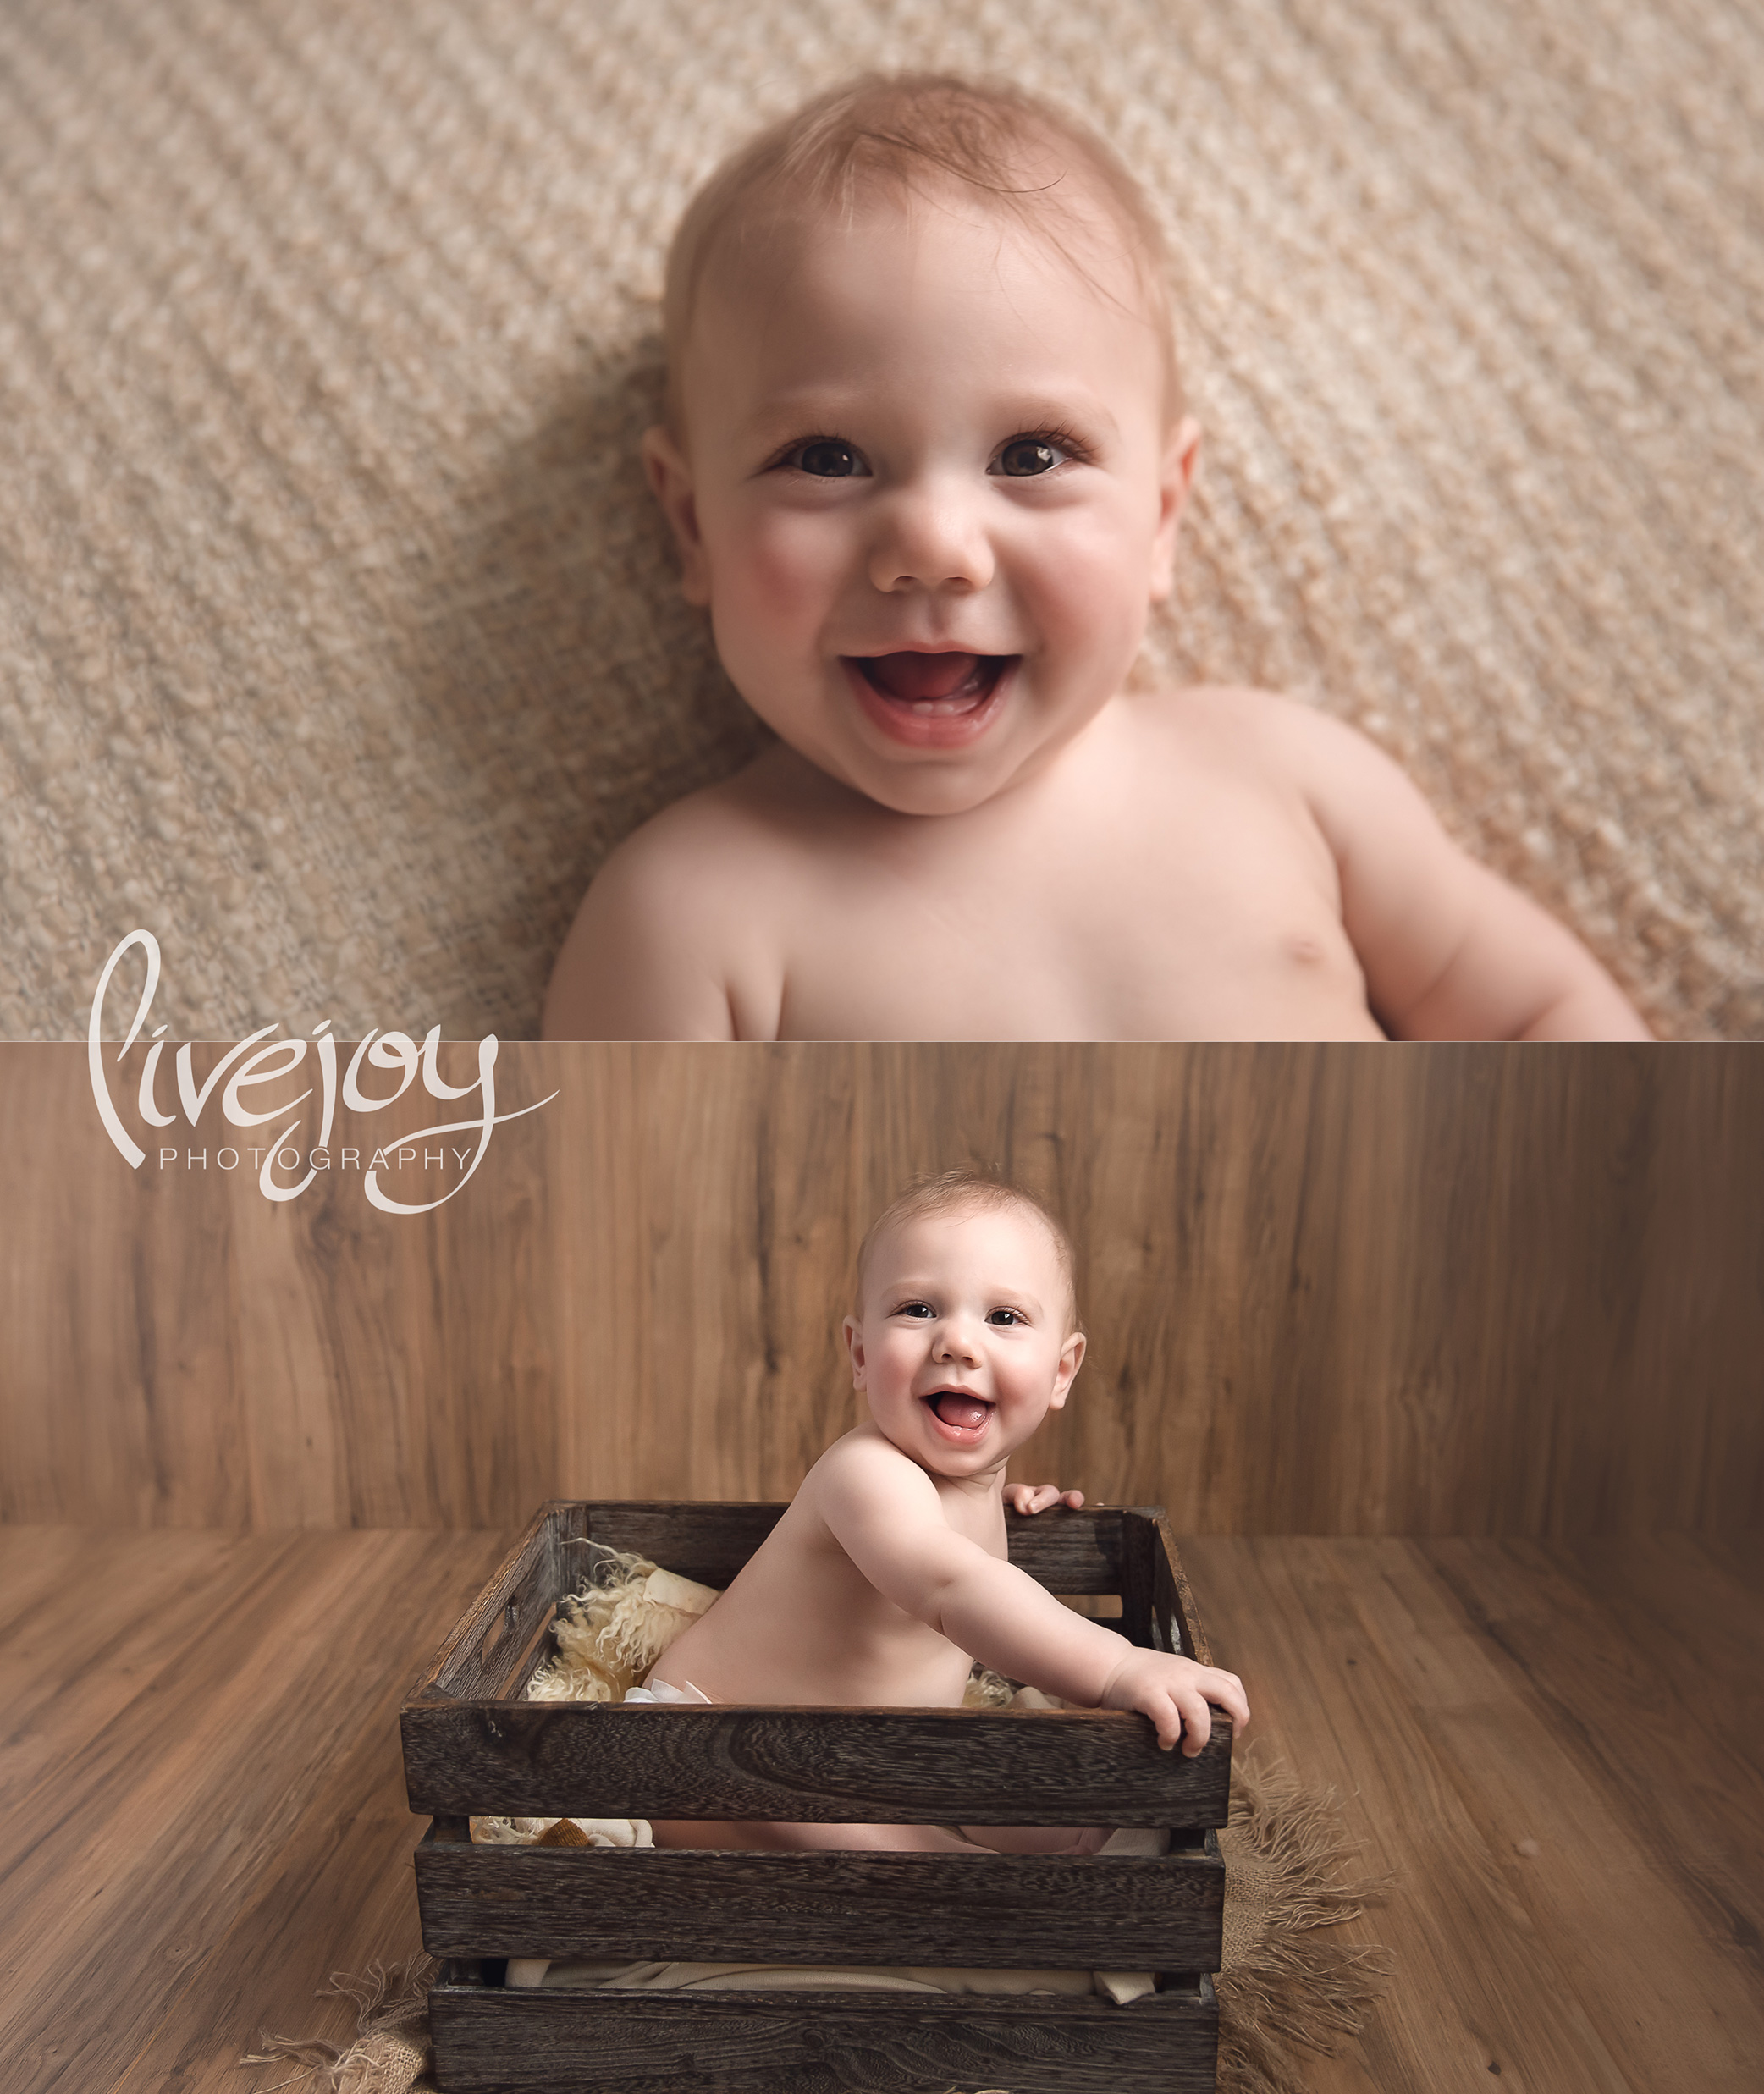 6 month Old Baby Photos | Oregon | LiveJoy Photography